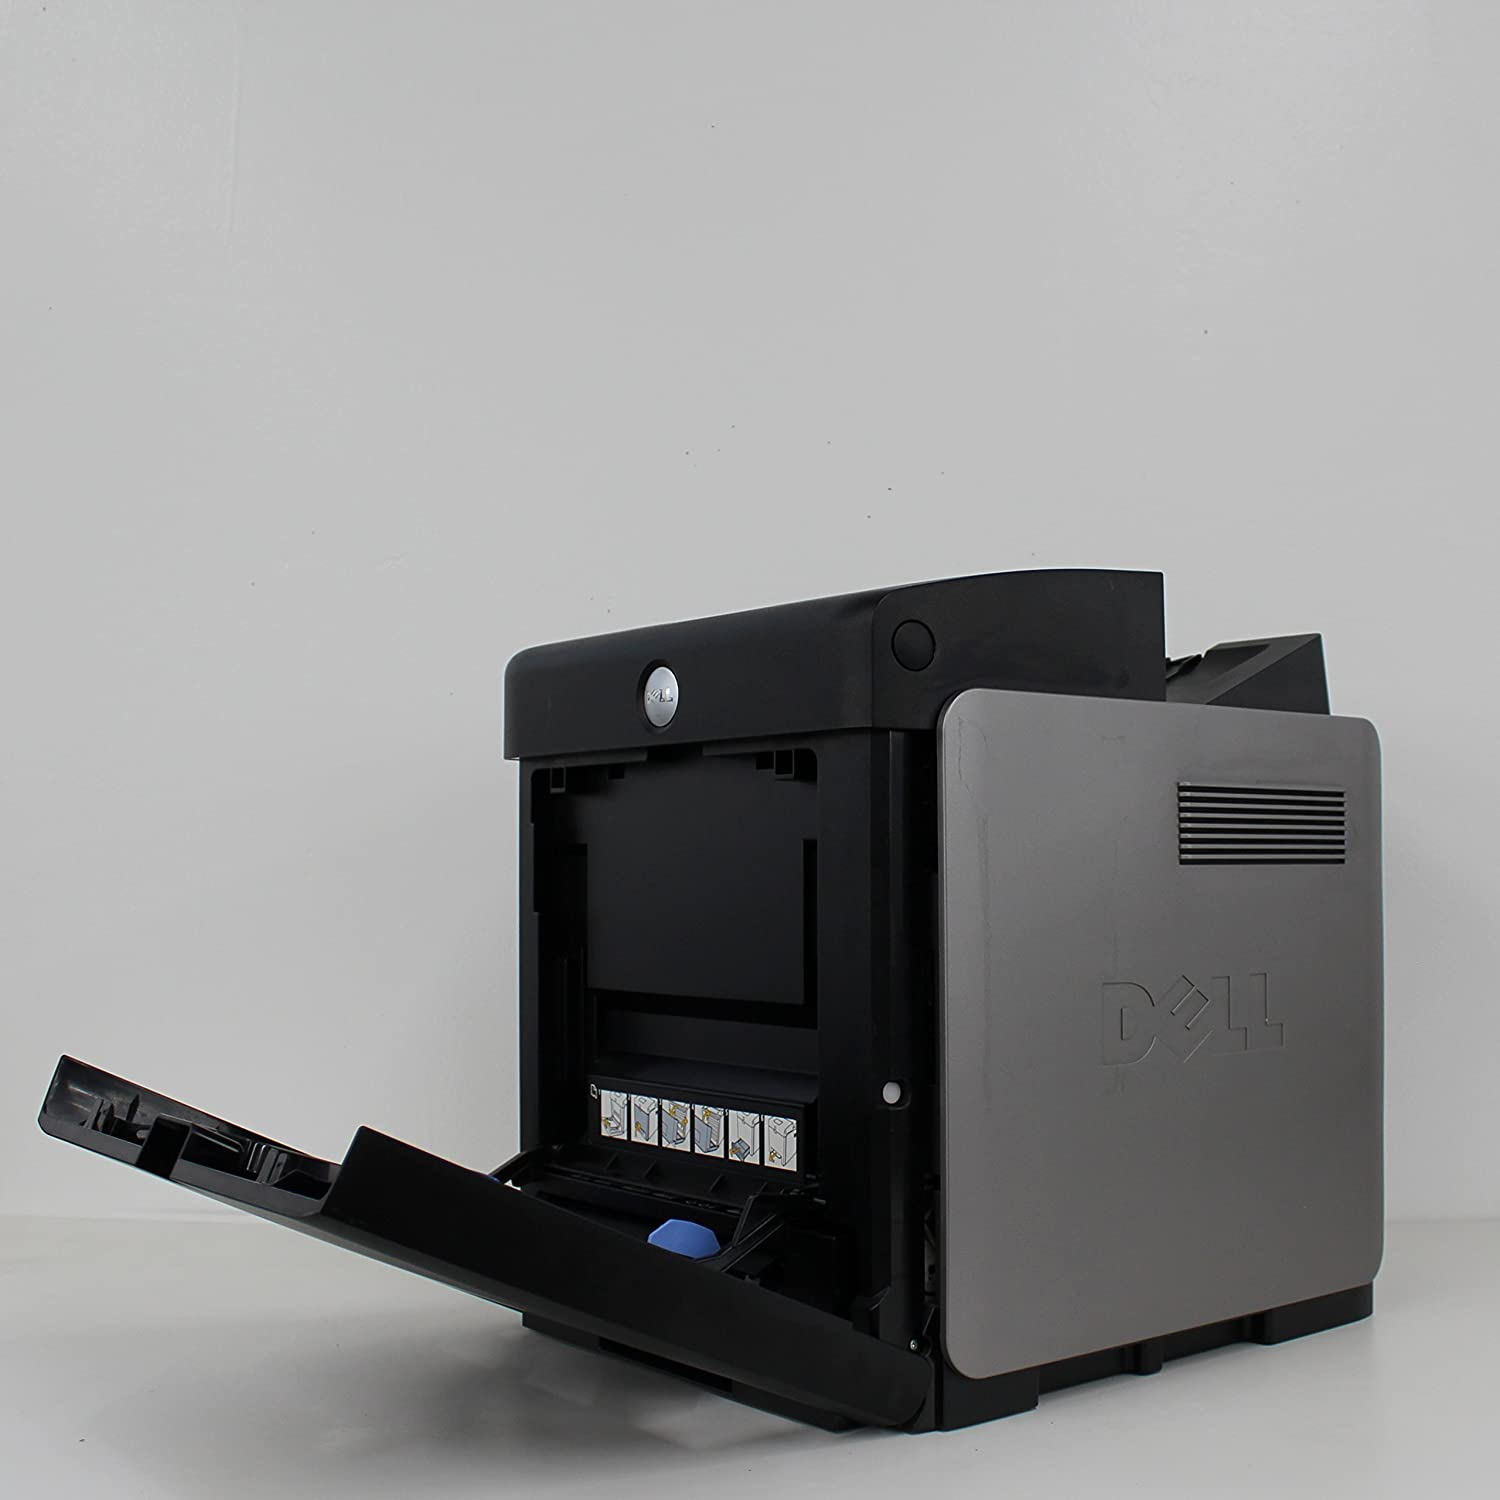 Amazon.com: Dell 3110cn Color Laser Network-Ready Printer with 1-Yr Next  Business Day Onsite Response Service: Electronics